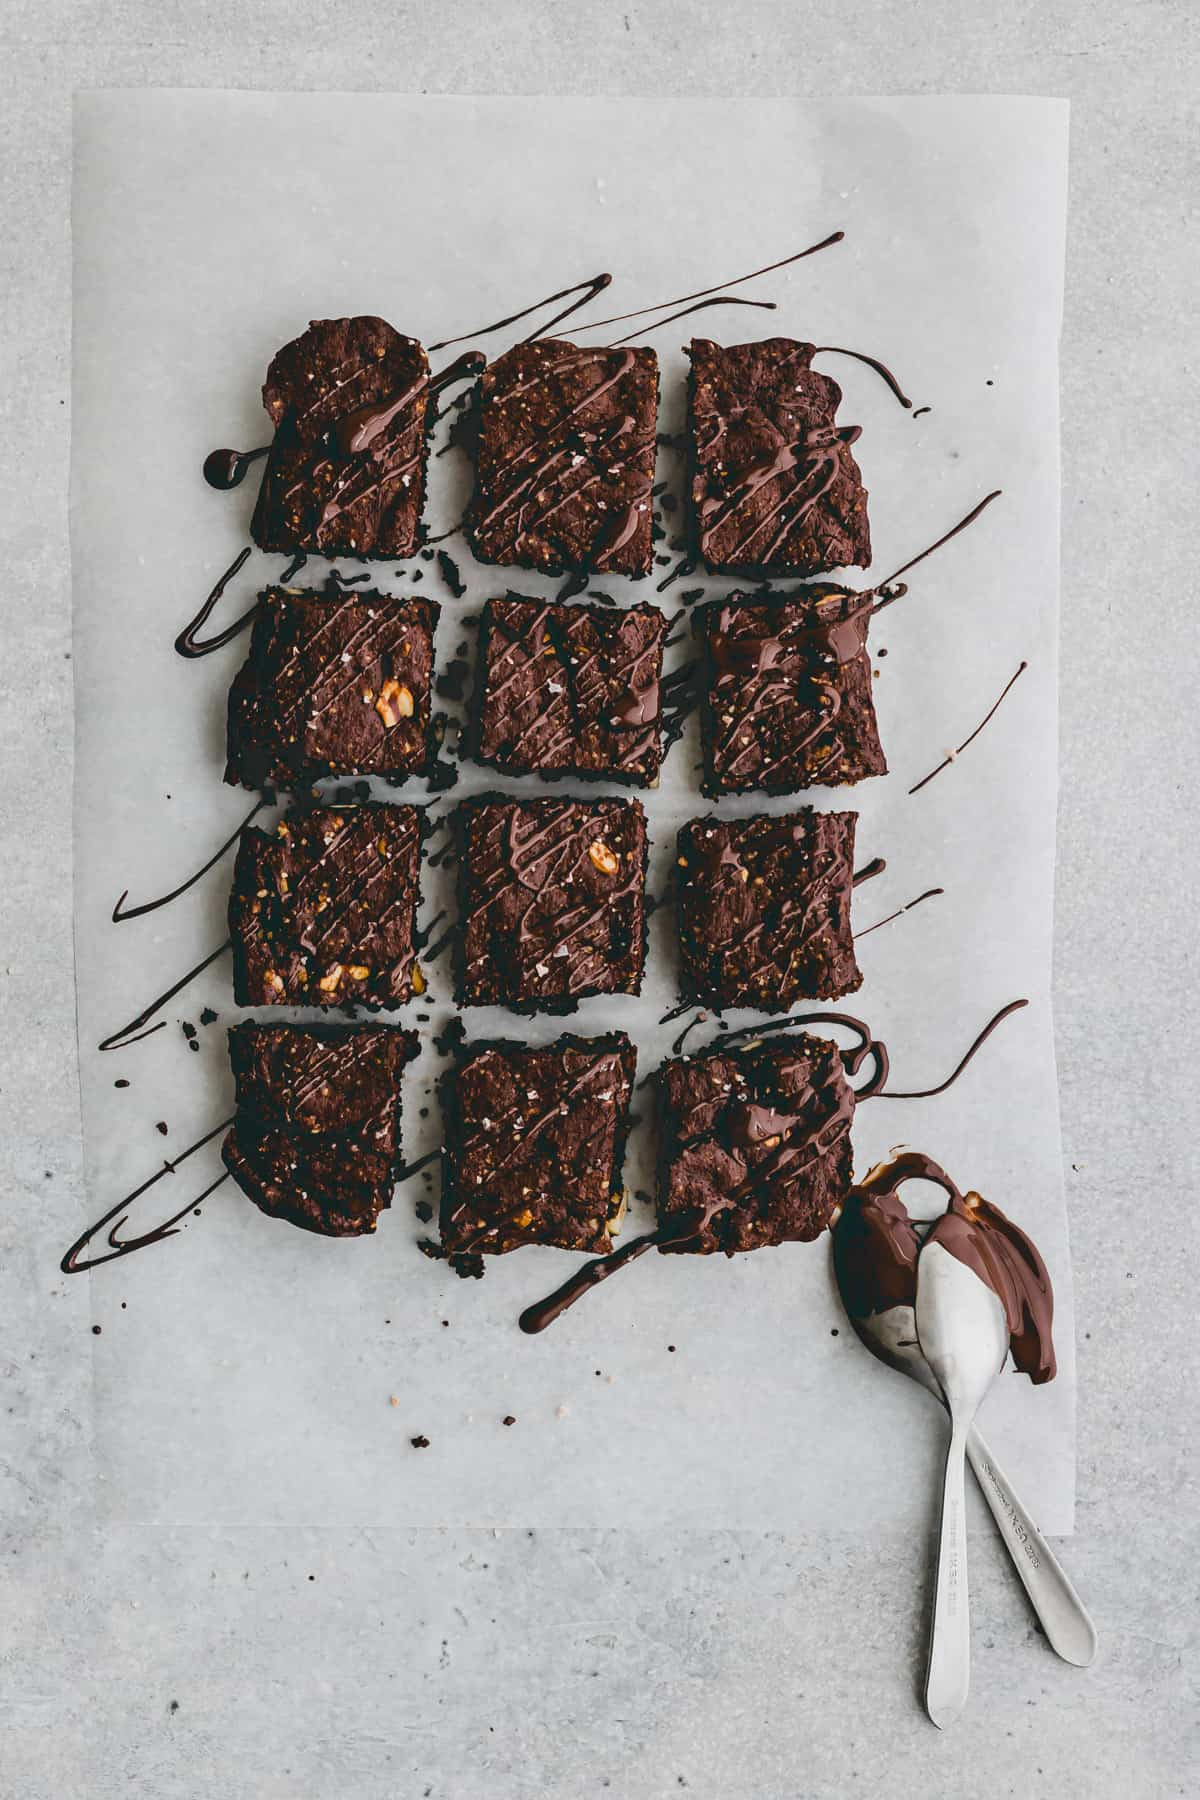 gluten-free paleo brownies drizzled with melted chocolate